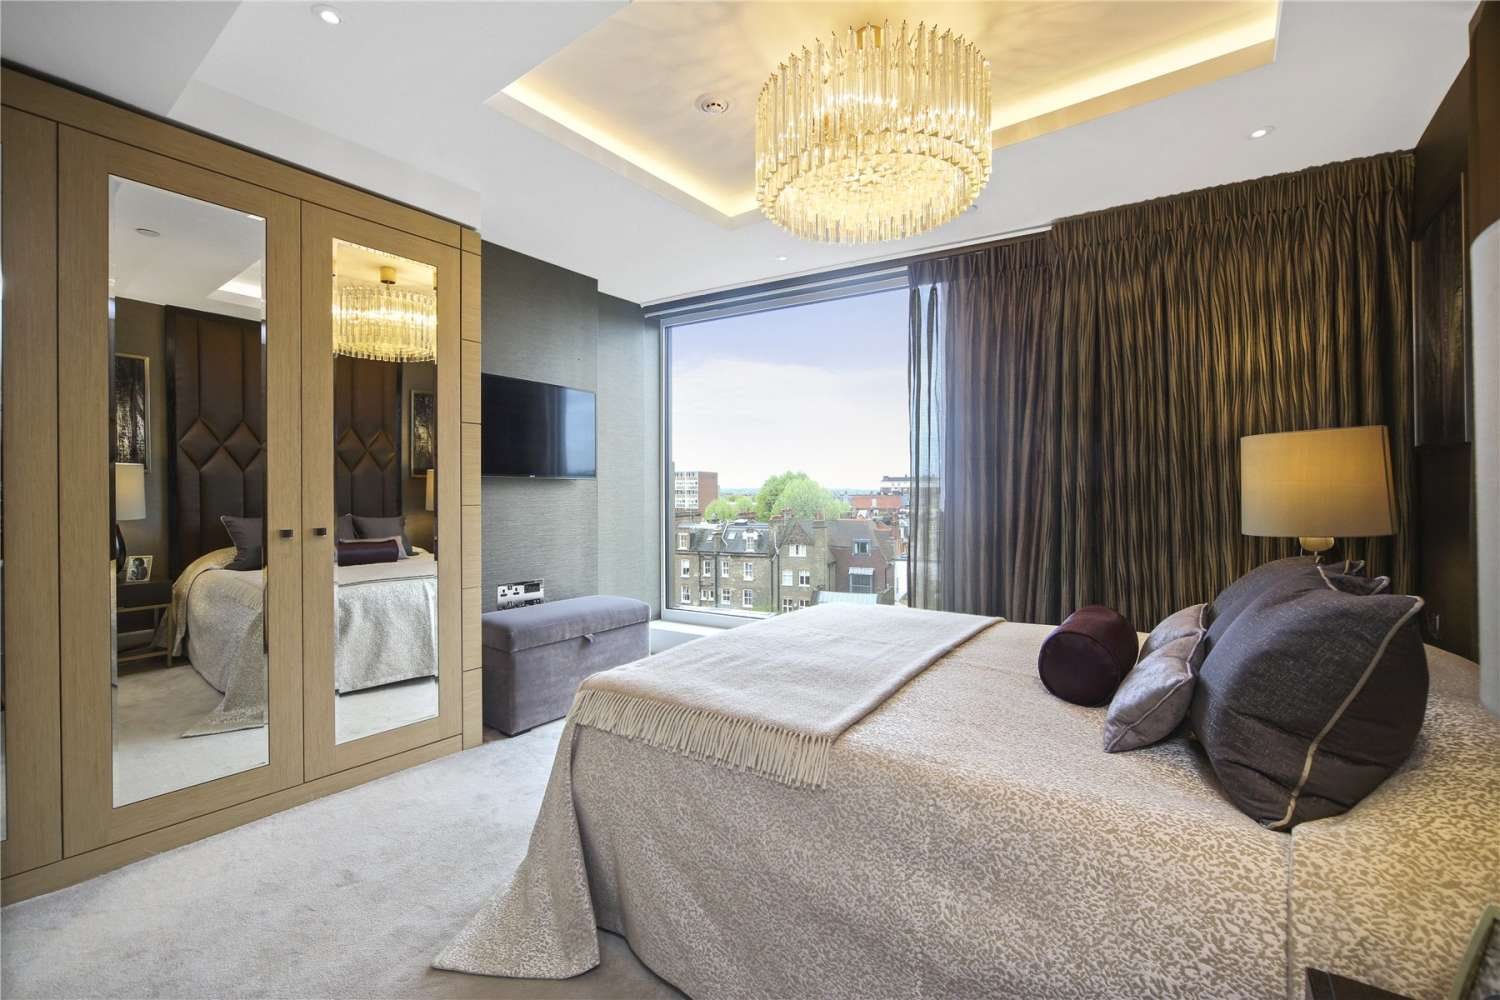 Apartment Kensington, W14 - Benson House 7 Radnor Terrace Kensington London - 04